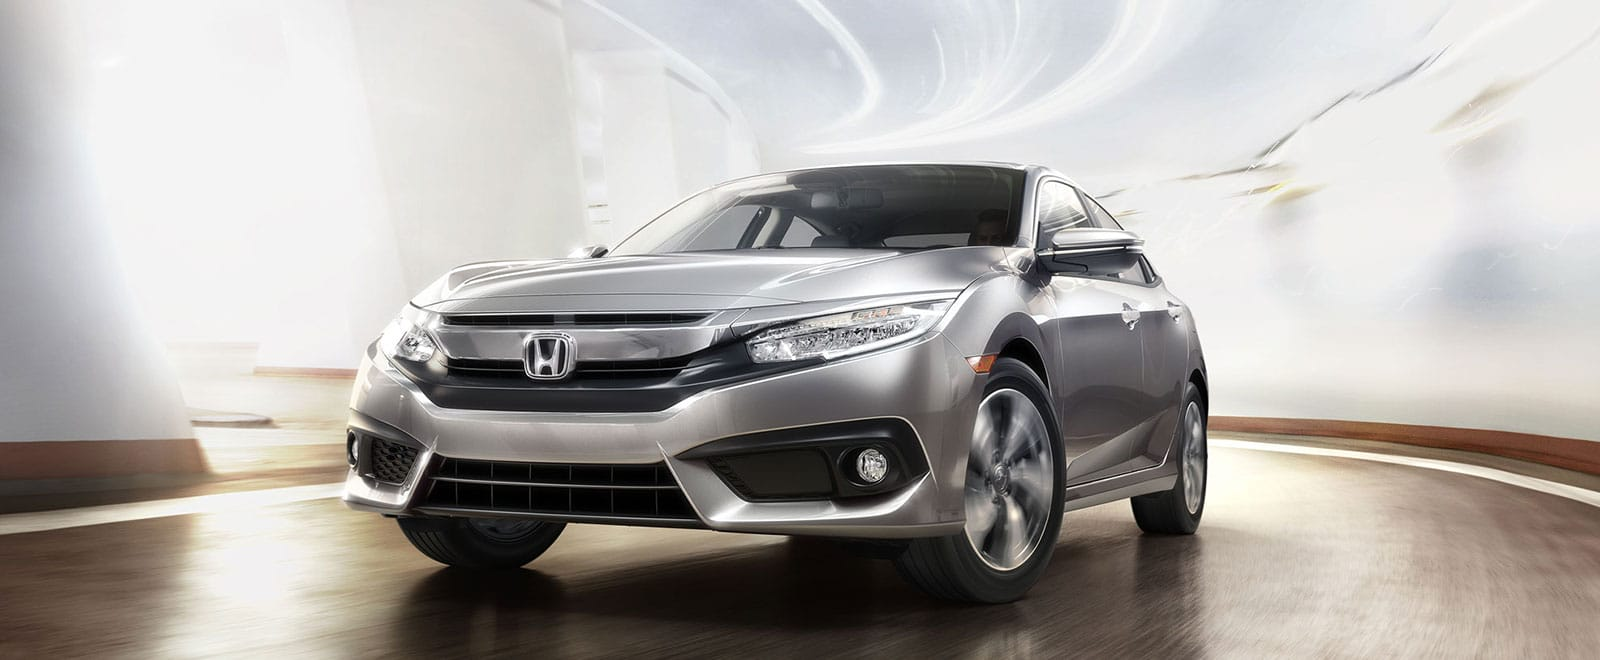 2018 Honda Civic for Sale Near Westchester, NY | Yonkers Honda